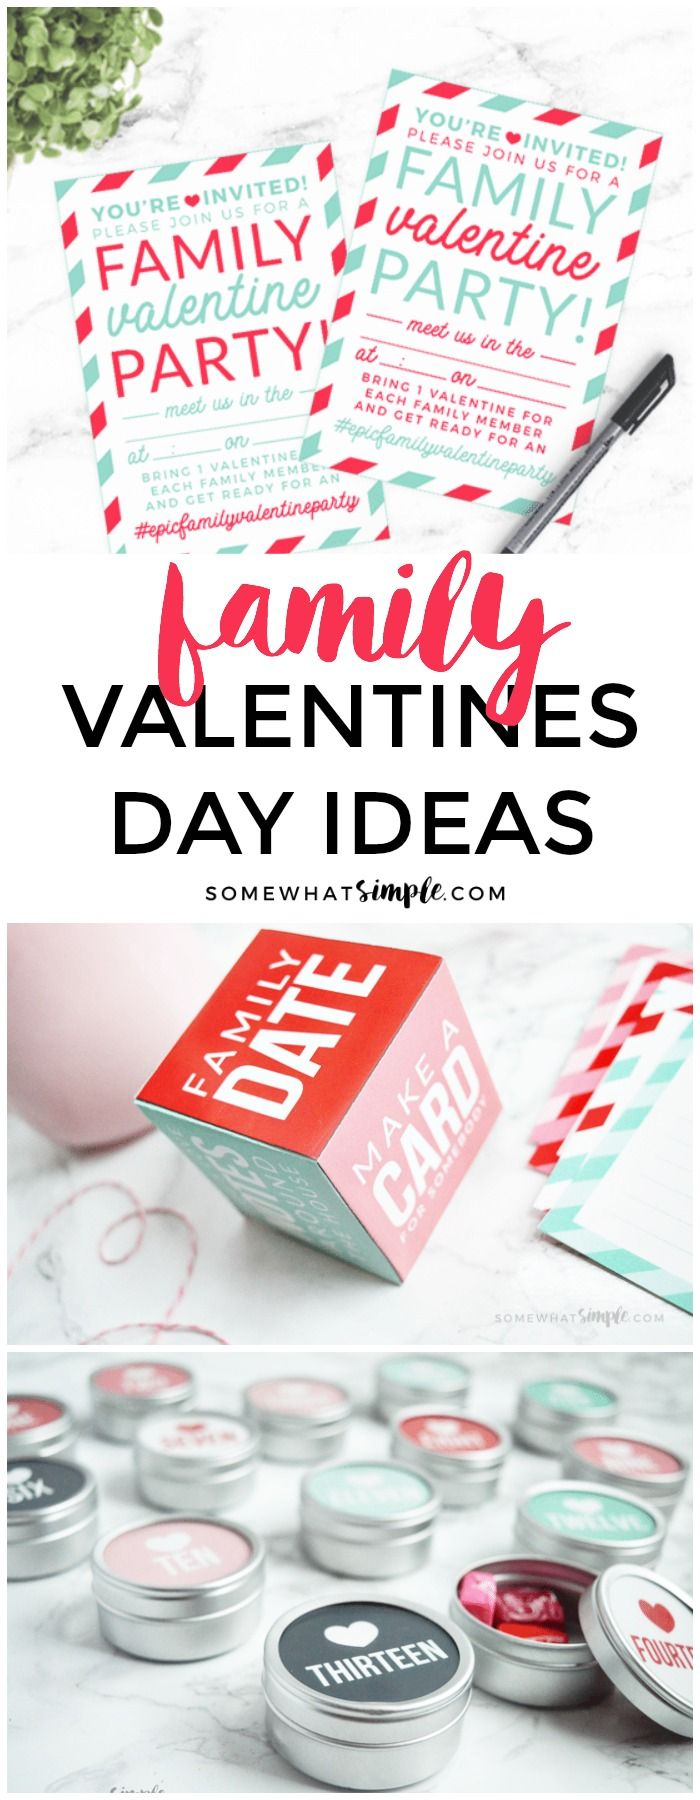 Plan the ULTIMATE Family Valentines Day | Holidays and Home-made ...